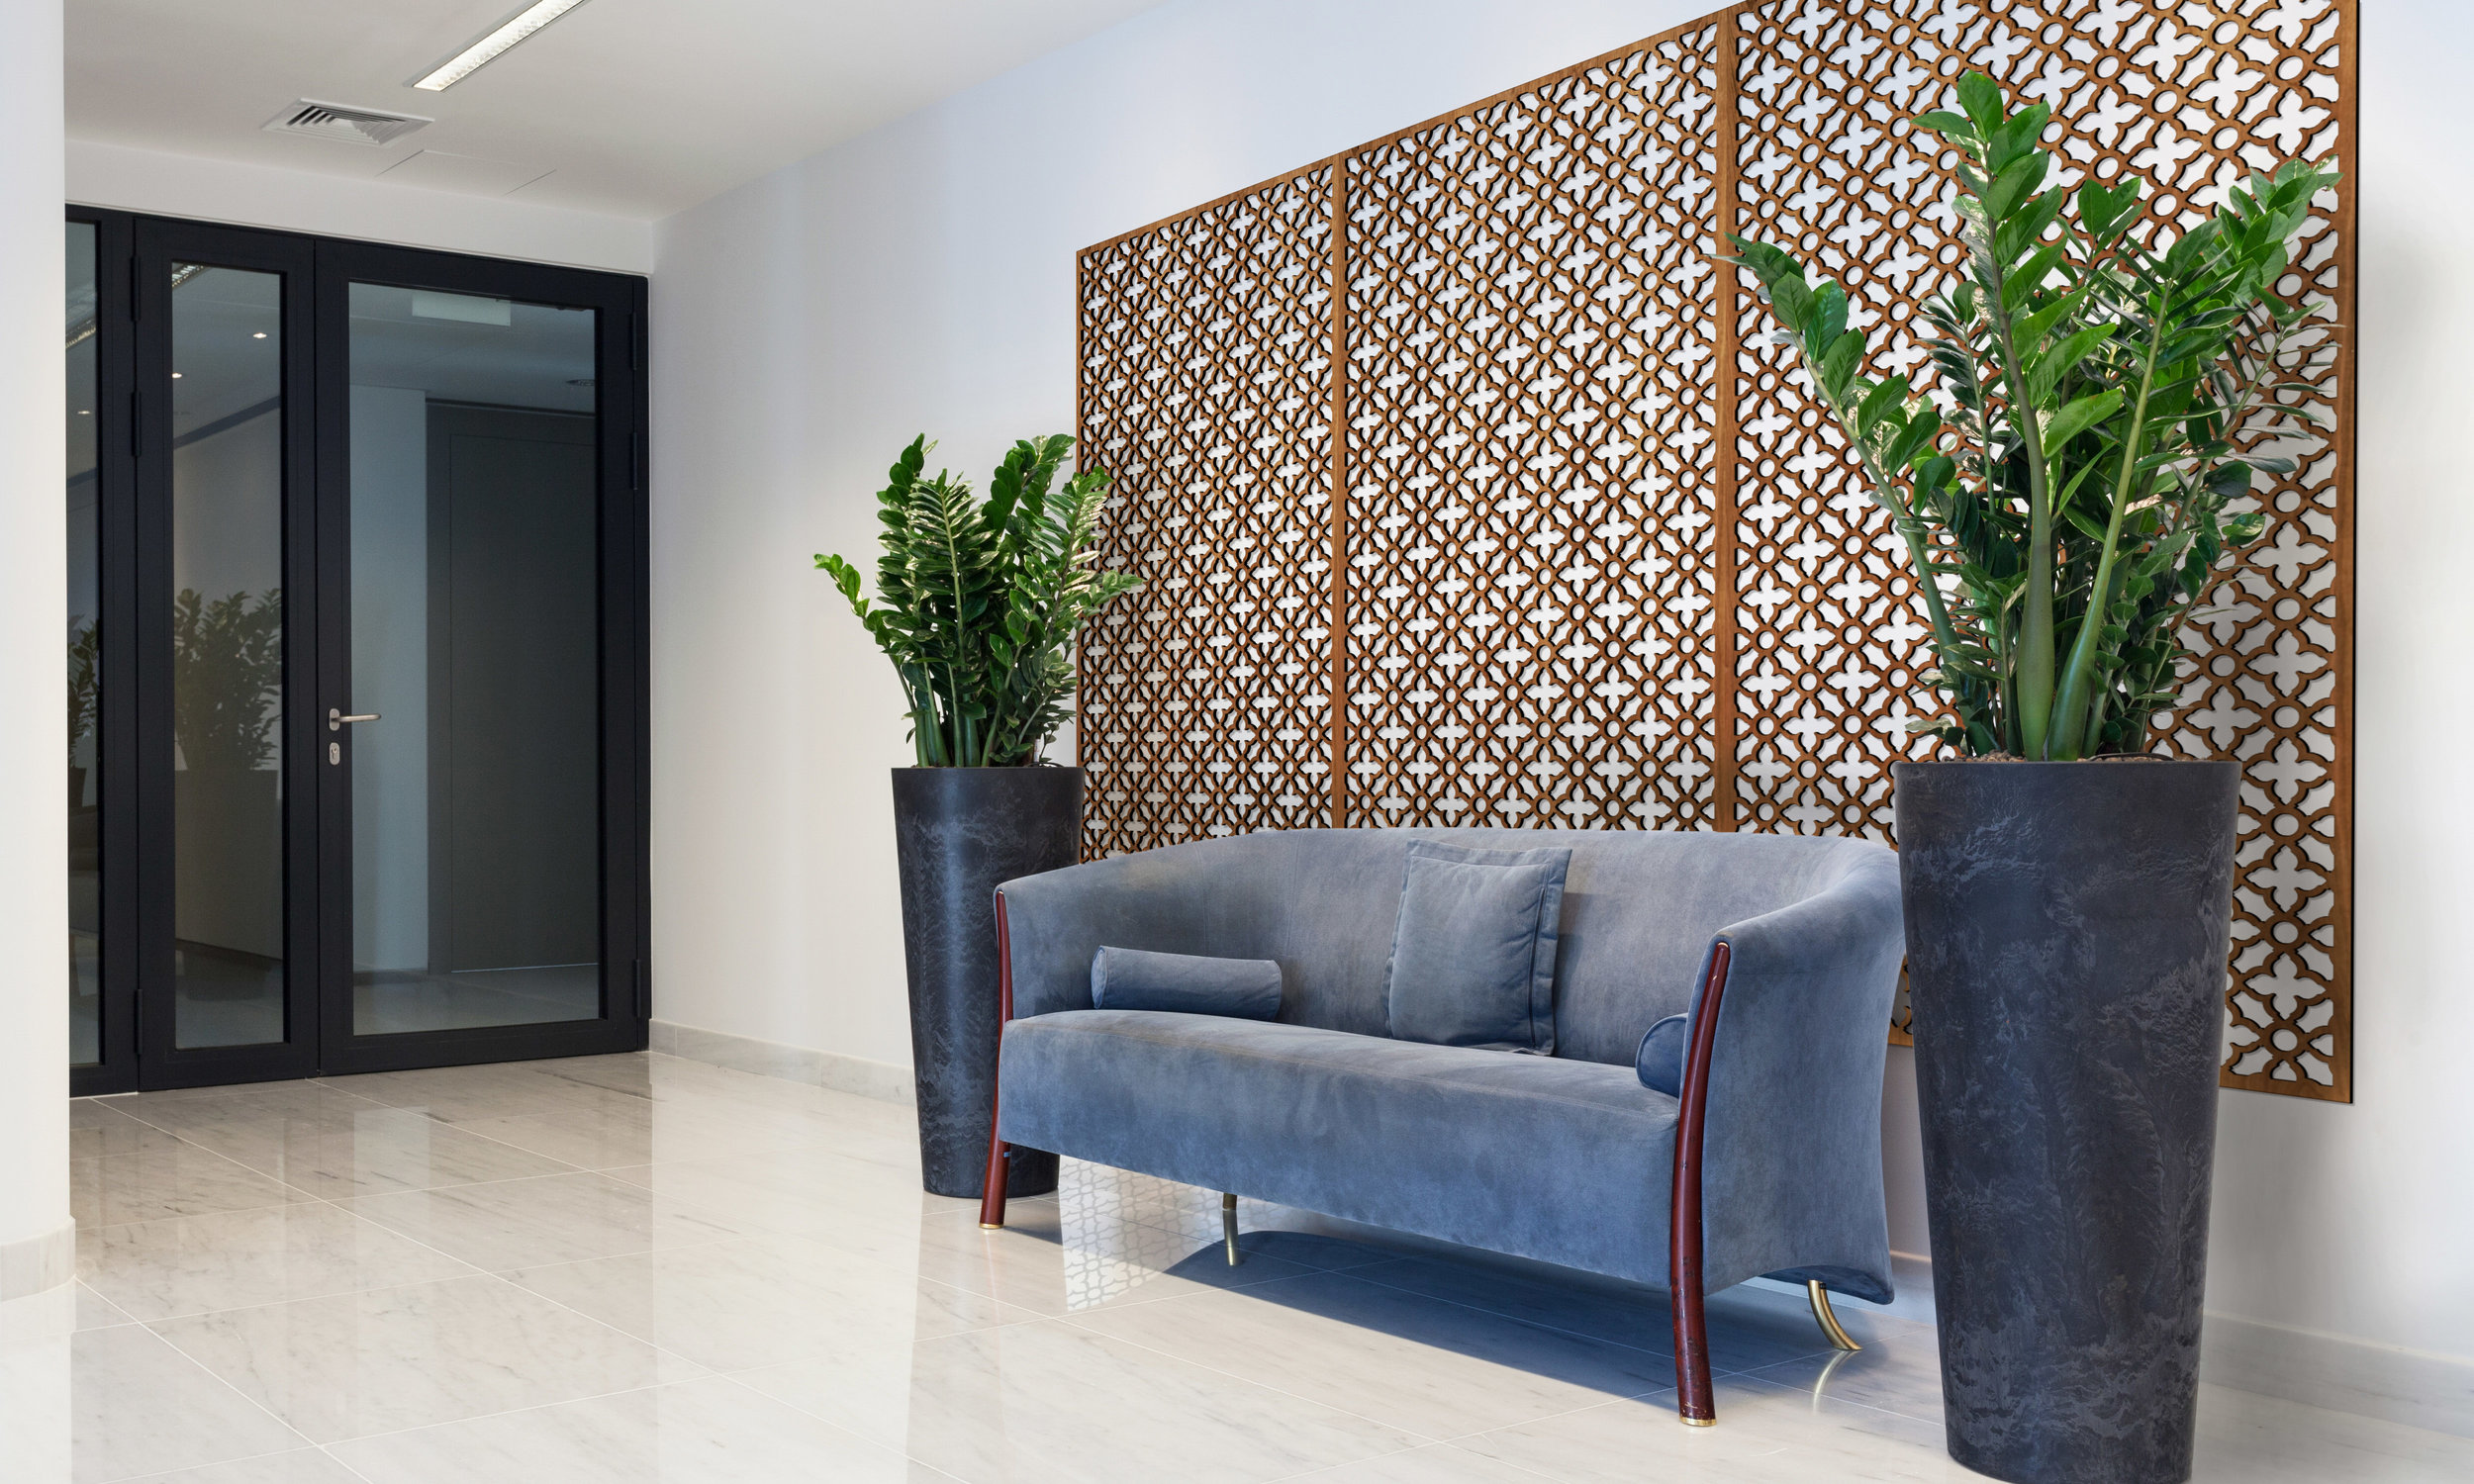 Installation Rendering A   Swift Grille decorative office wall panel - shown in Cherry